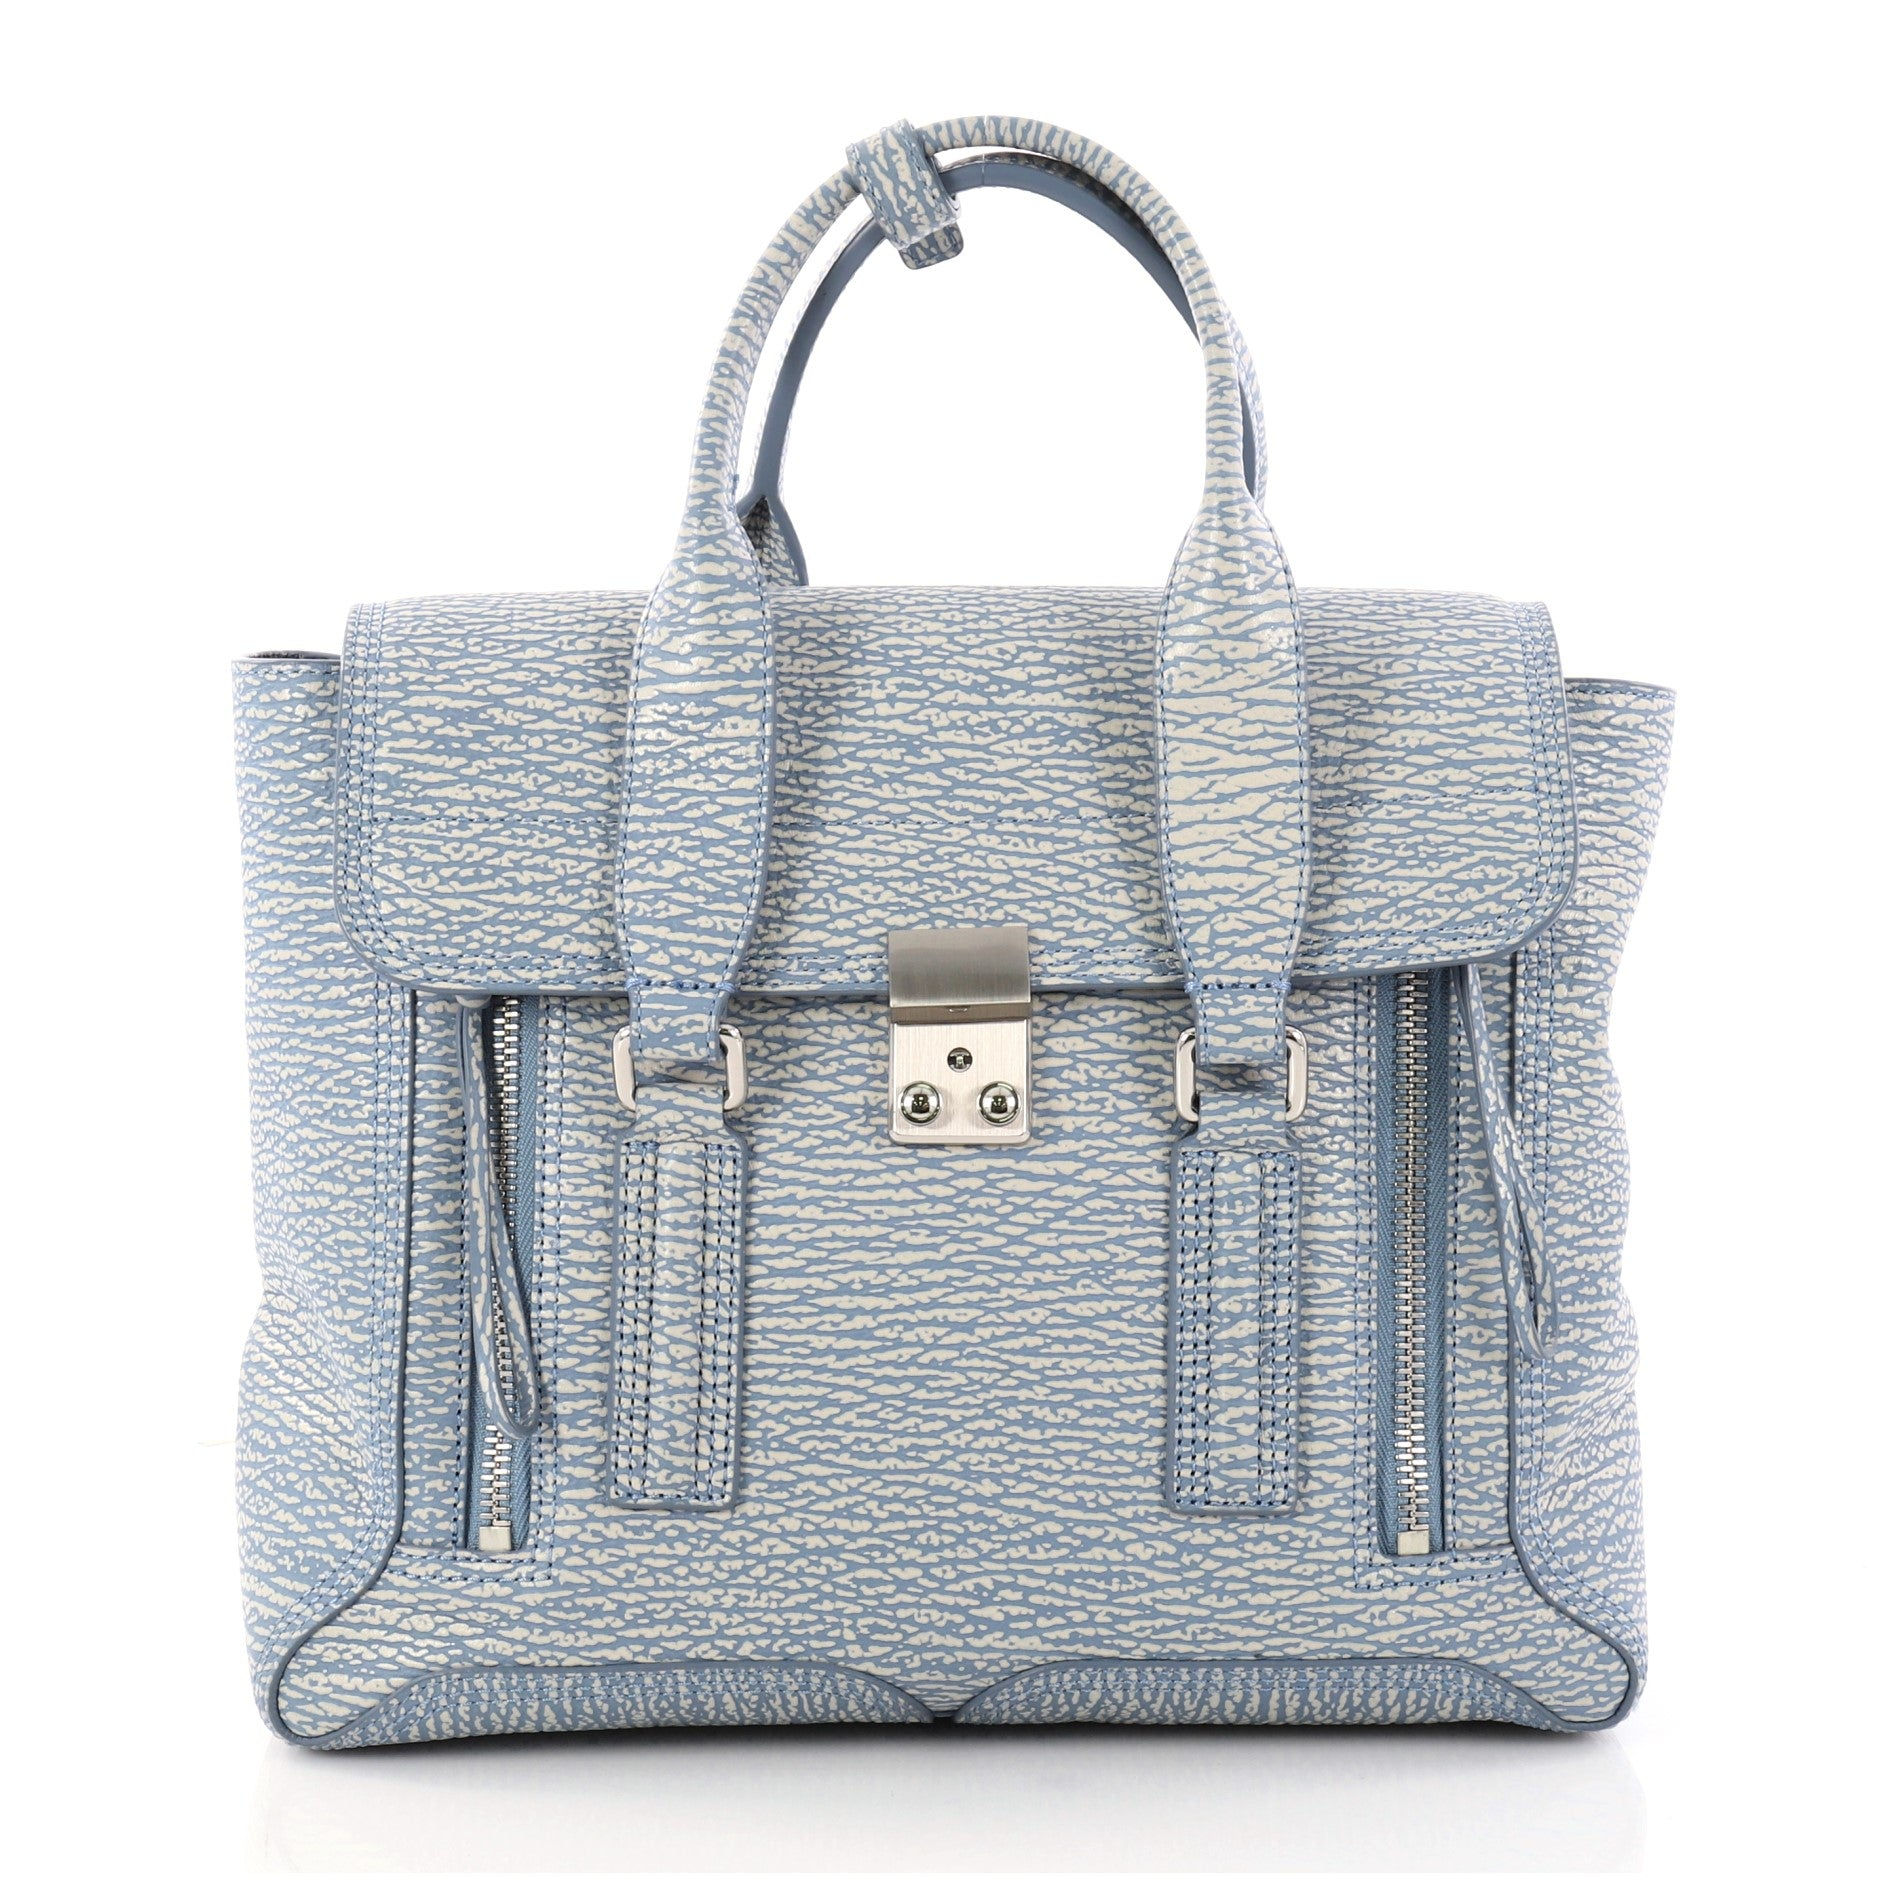 a7bdf2135289 Where To Sell Used Handbags Online | Stanford Center for Opportunity ...